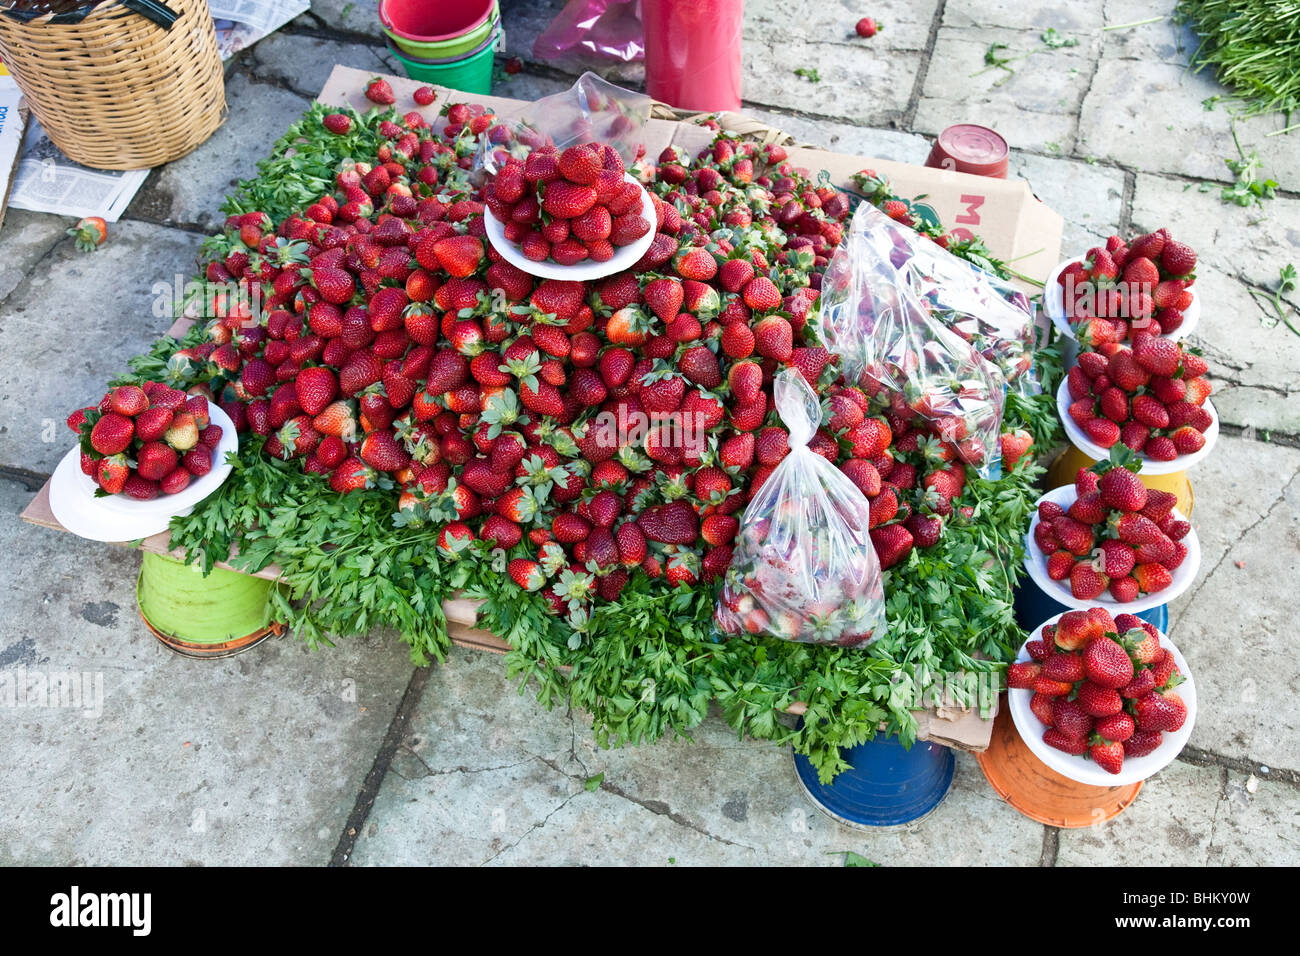 enticing grouping of delicious fresh strawberries artfully arranged for sale on pavement at Ocotlan market Oaxaca - Stock Image